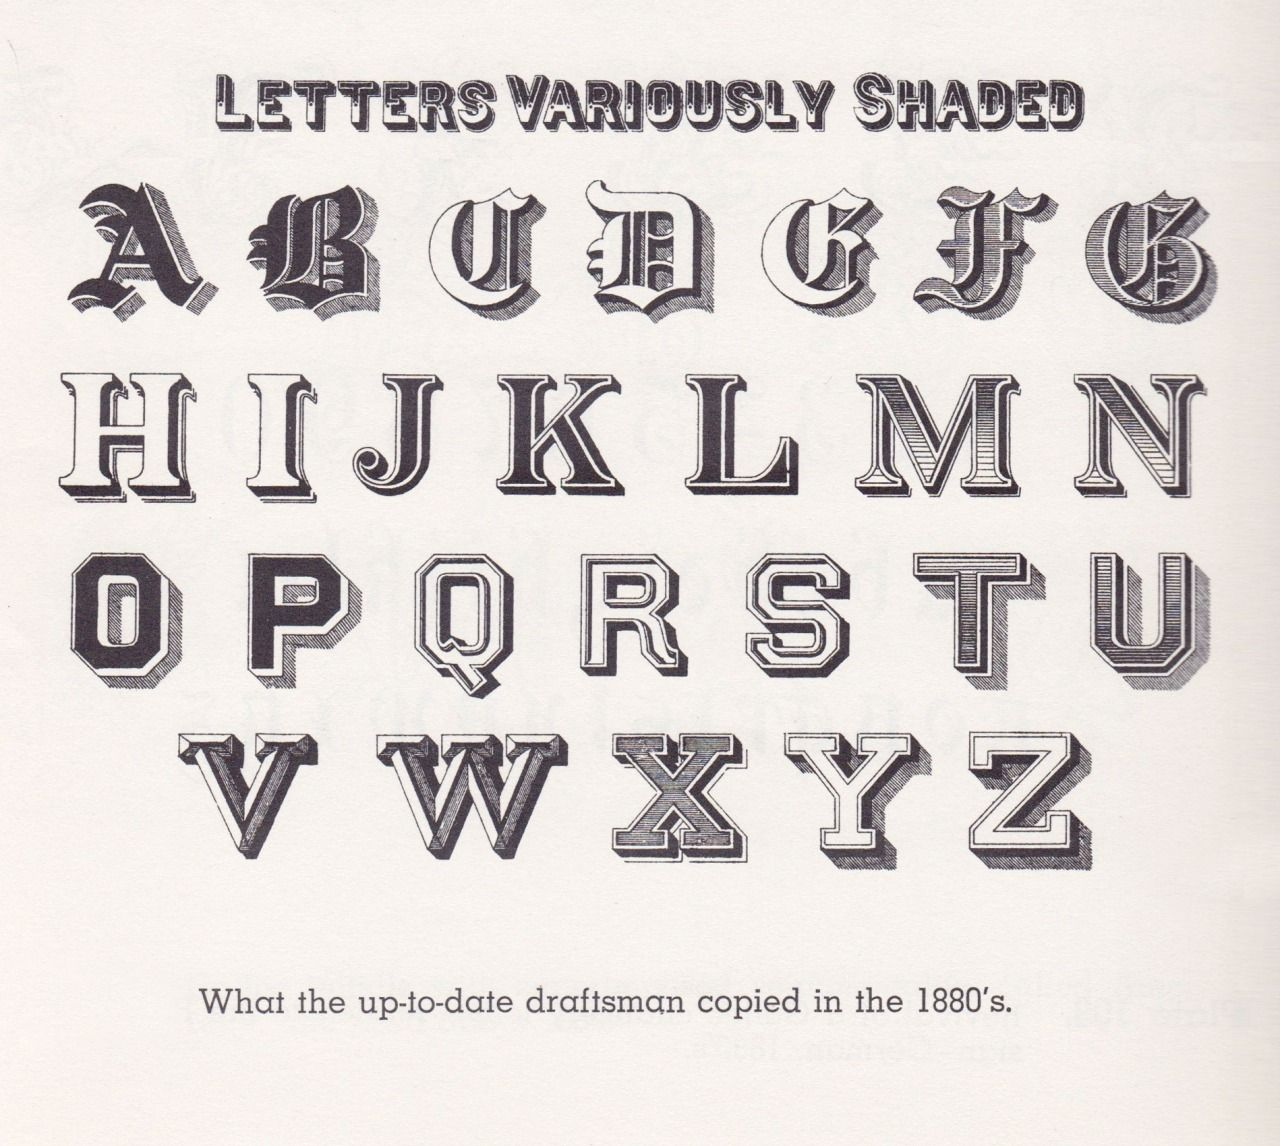 Letters Variously Shaded 12 Styles Of Letter Shading From